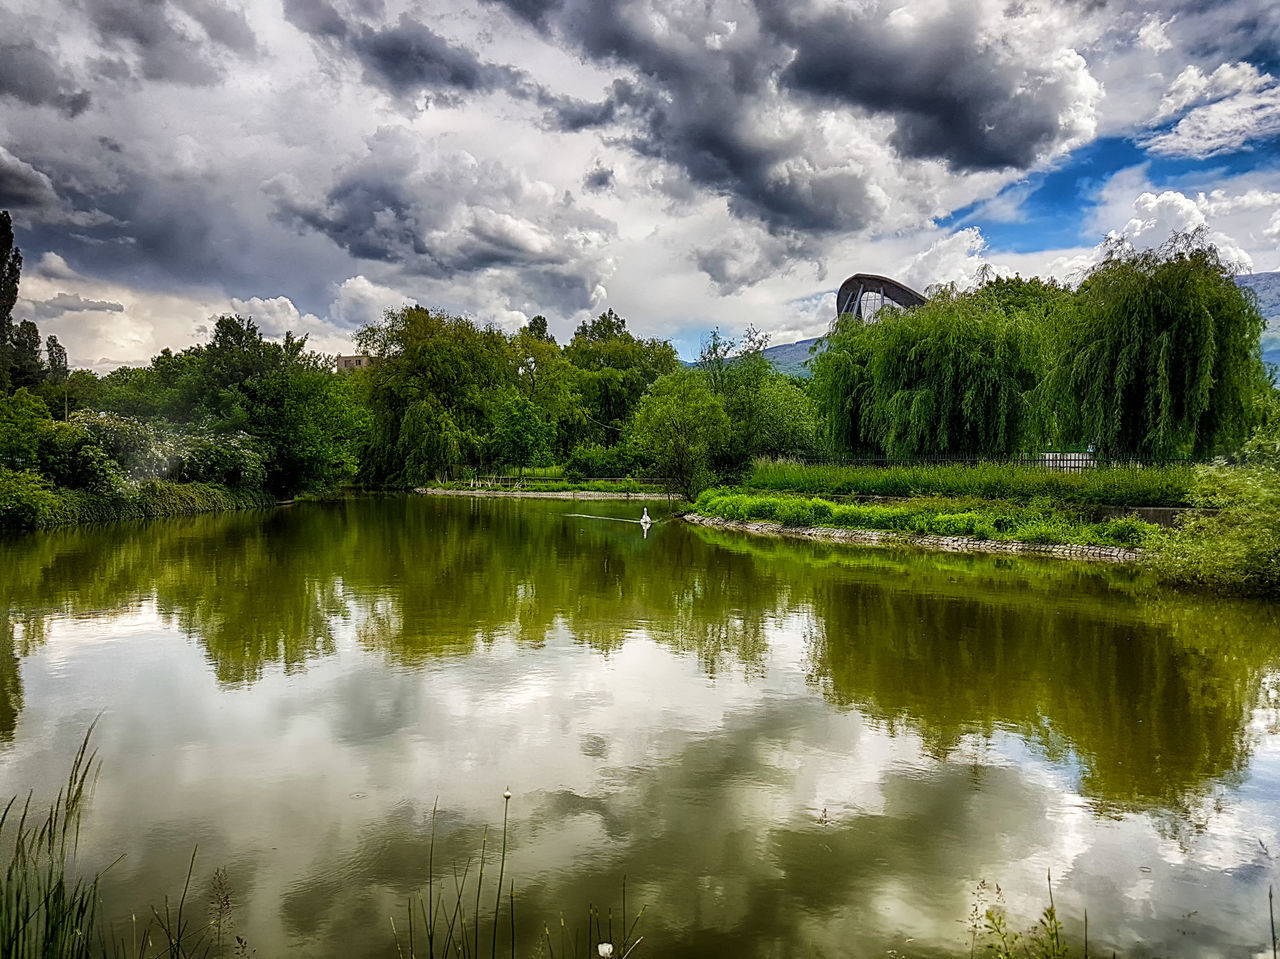 tree, reflection, cloud - sky, water, green color, sky, tranquil scene, nature, scenics, waterfront, lake, beauty in nature, no people, tranquility, outdoors, day, growth, grass